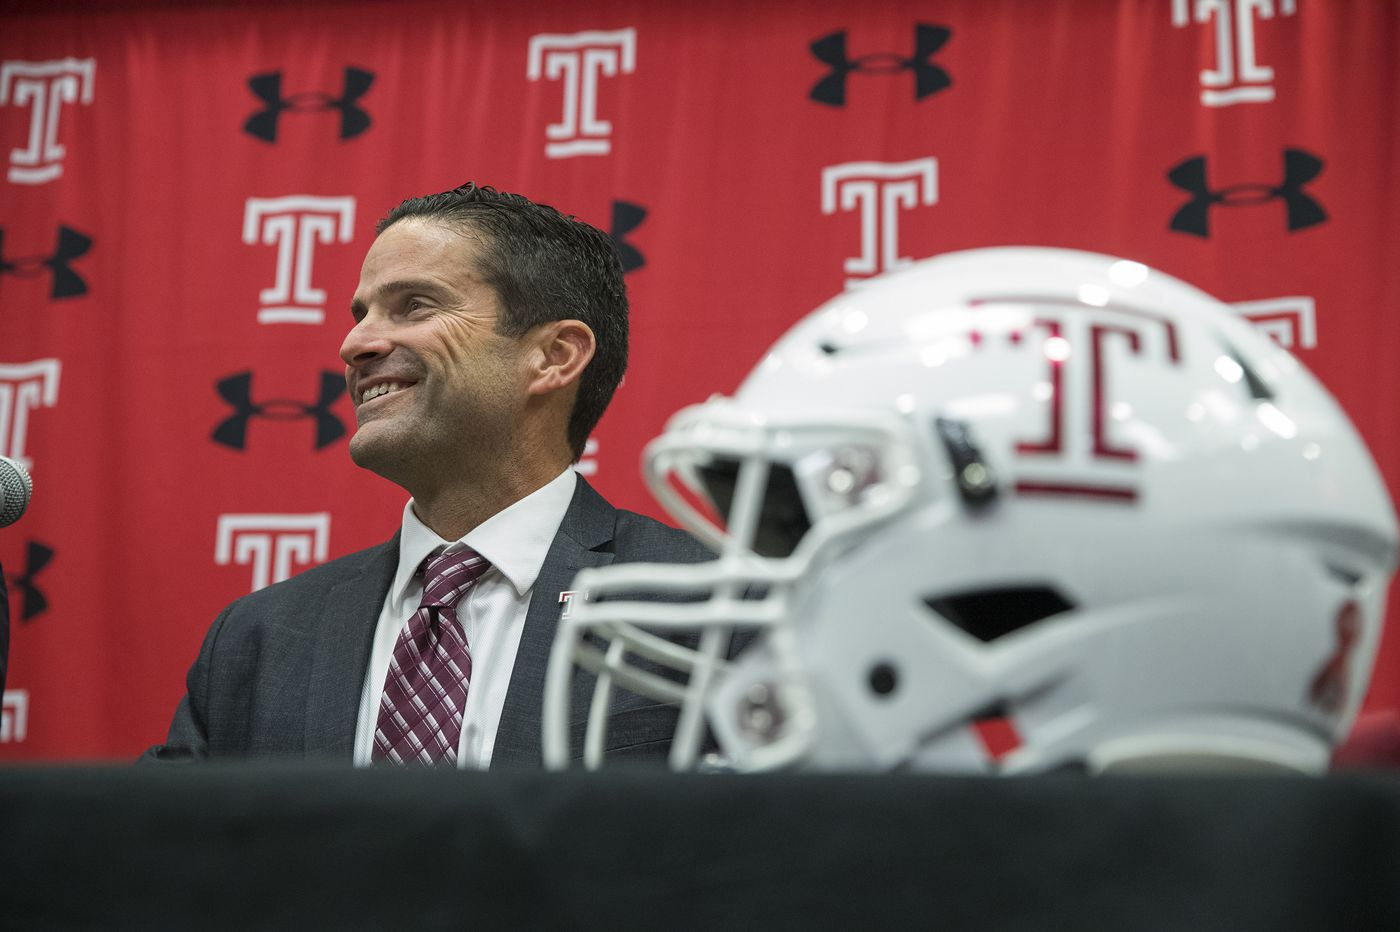 Temple football's coaching search expected to start in-person interviews next week